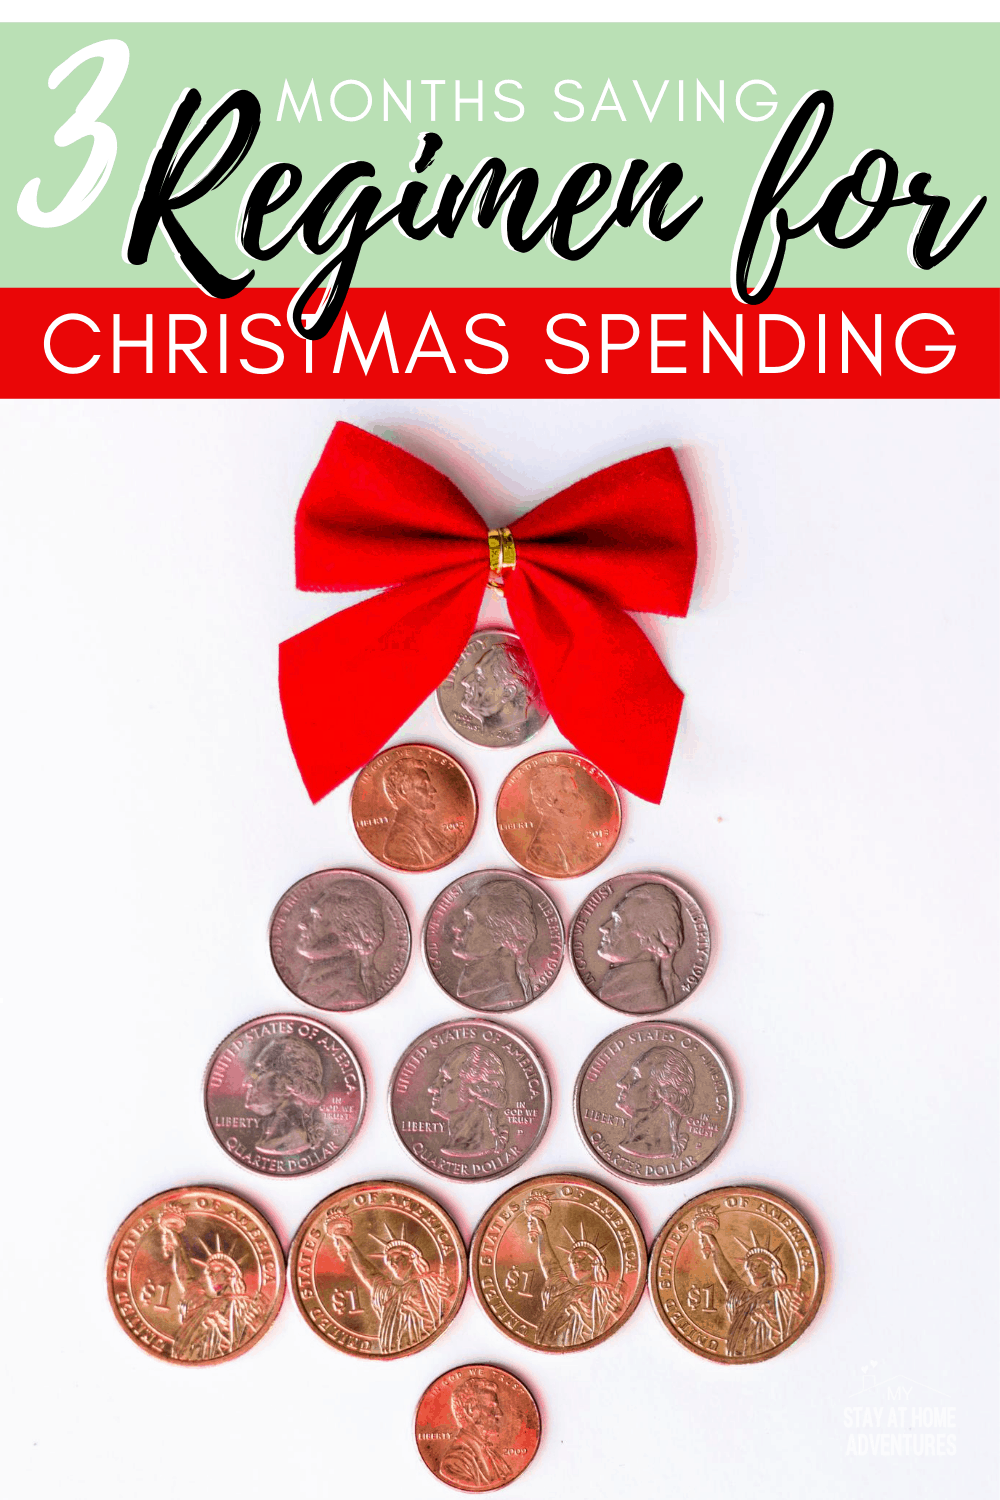 Are you saving for Christmas? Follow our 3 months saving regimen for Christmas spending with these 8 steps to achieve realistic Christmas saving goals. via @mystayathome